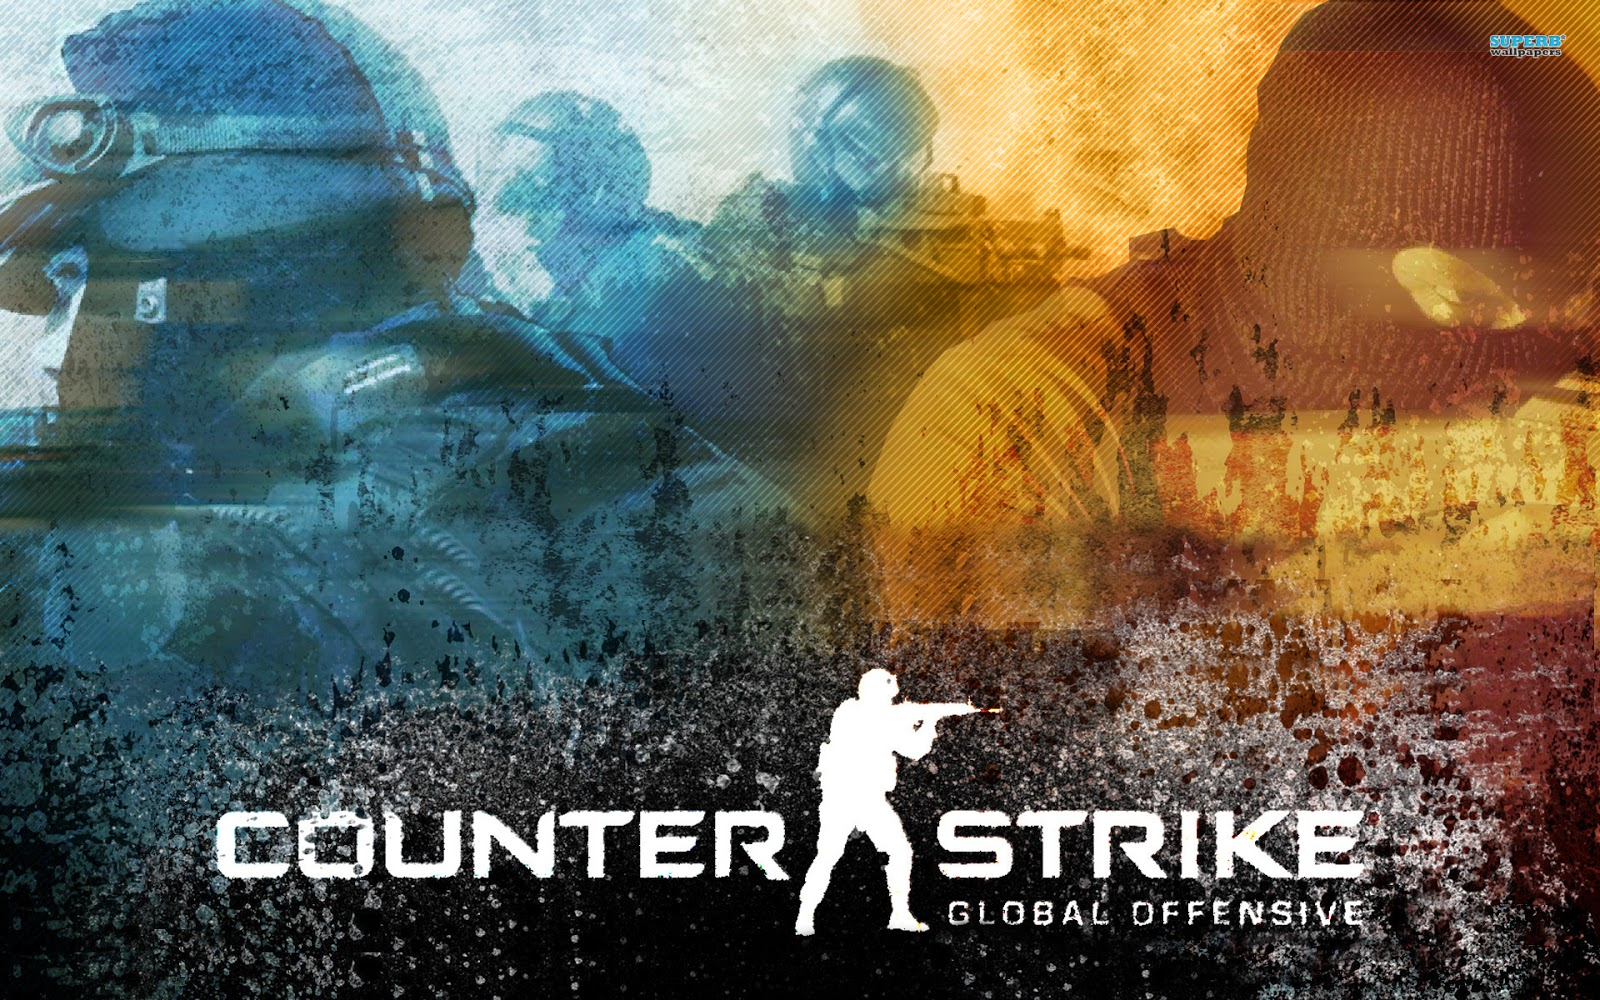 from Gerardo global offensive team matchmaking